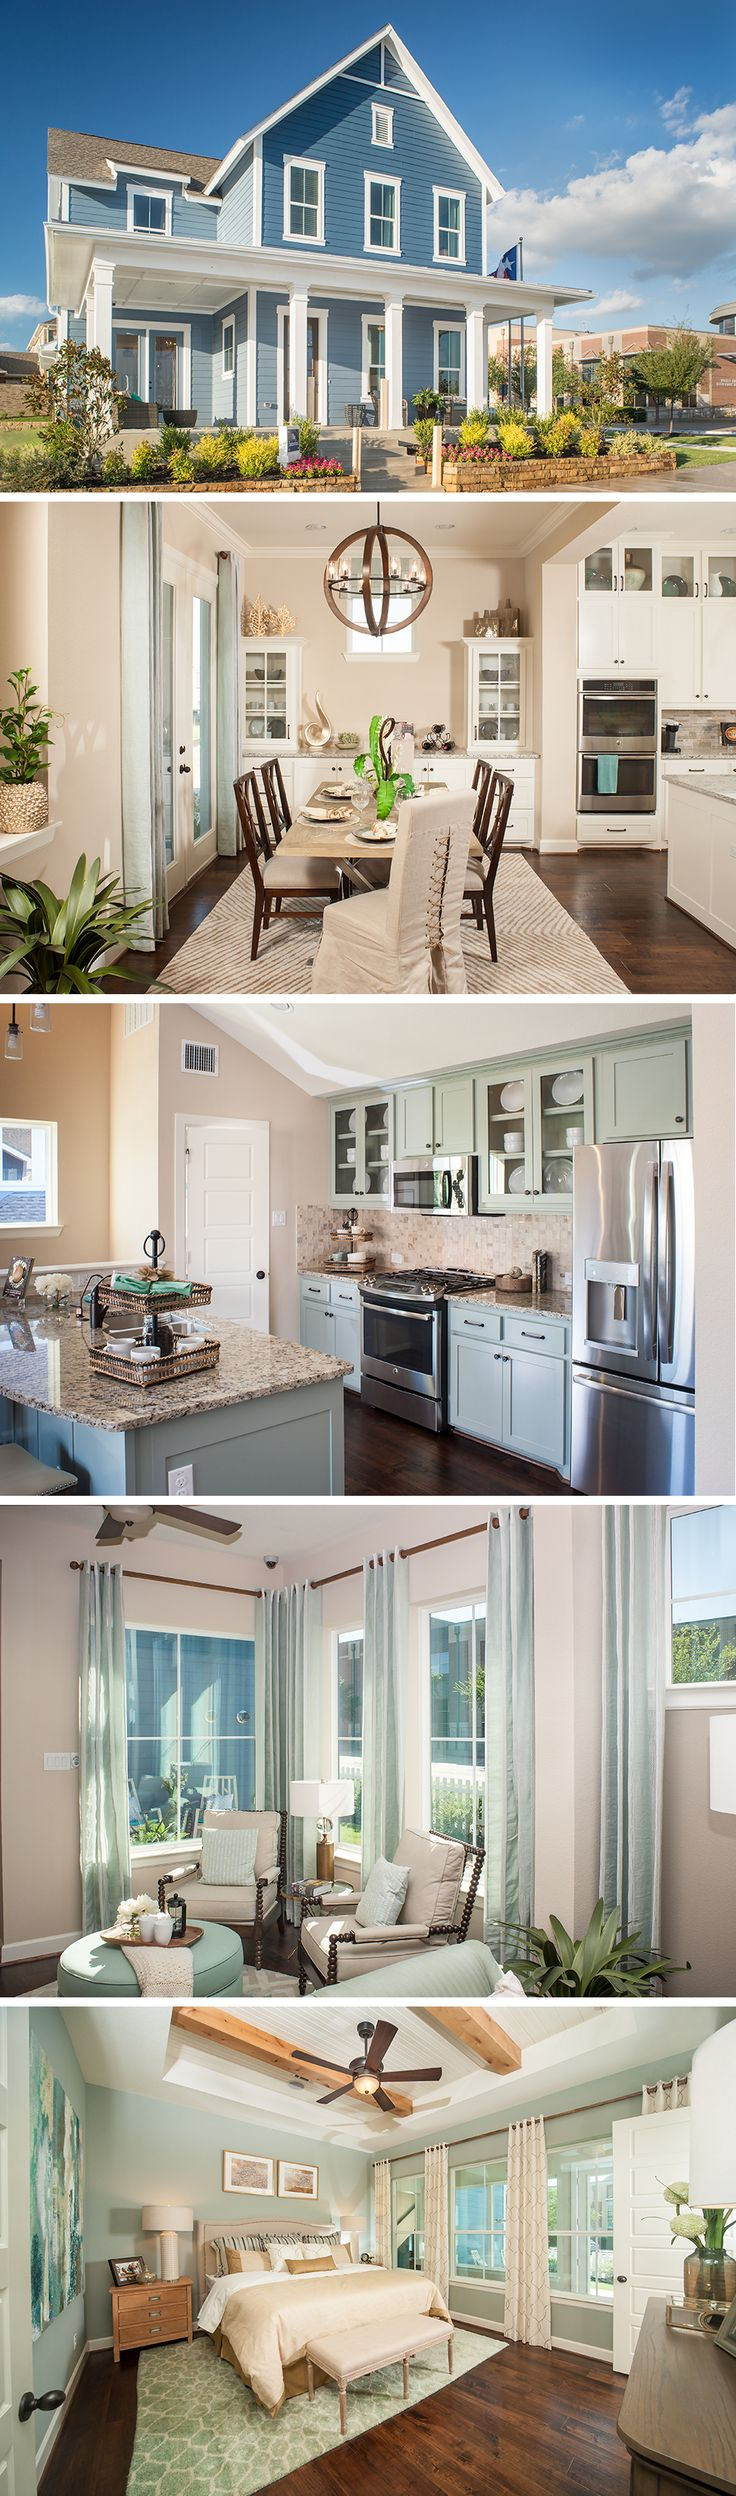 White Kitchen Open To Family Room best 25+ open family room ideas on pinterest | open concept great